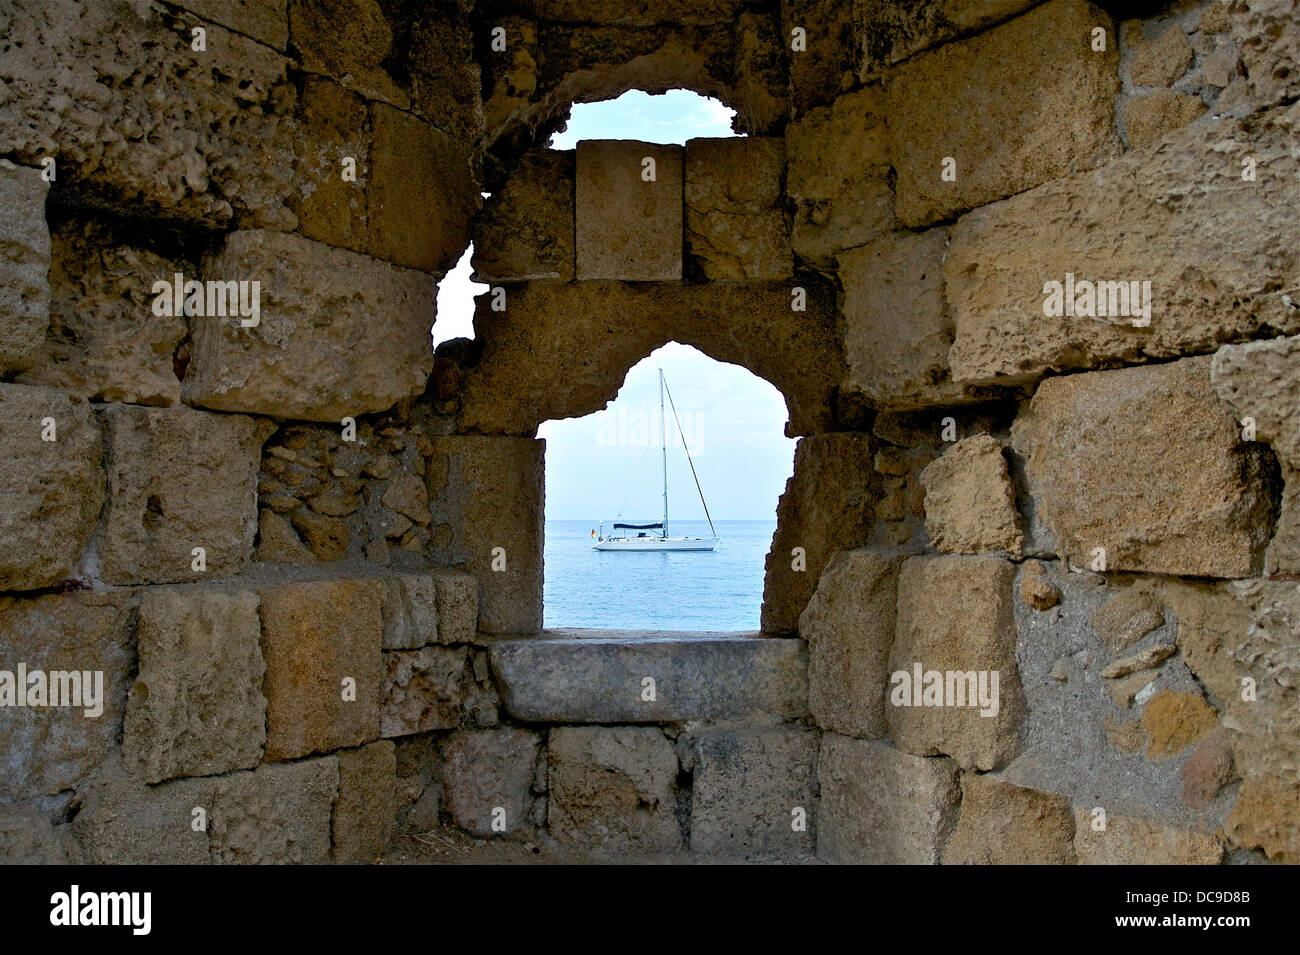 A ship flying german flag, through the walls of the medieval city of Rhodes. Greece. - Stock Image